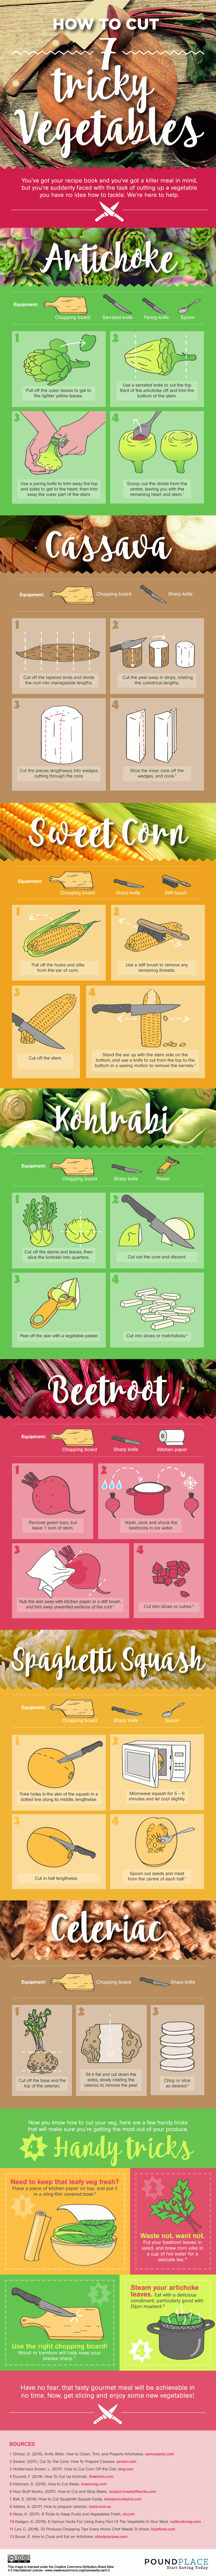 How To Cut 7 Tricky Vegetables #Infographic